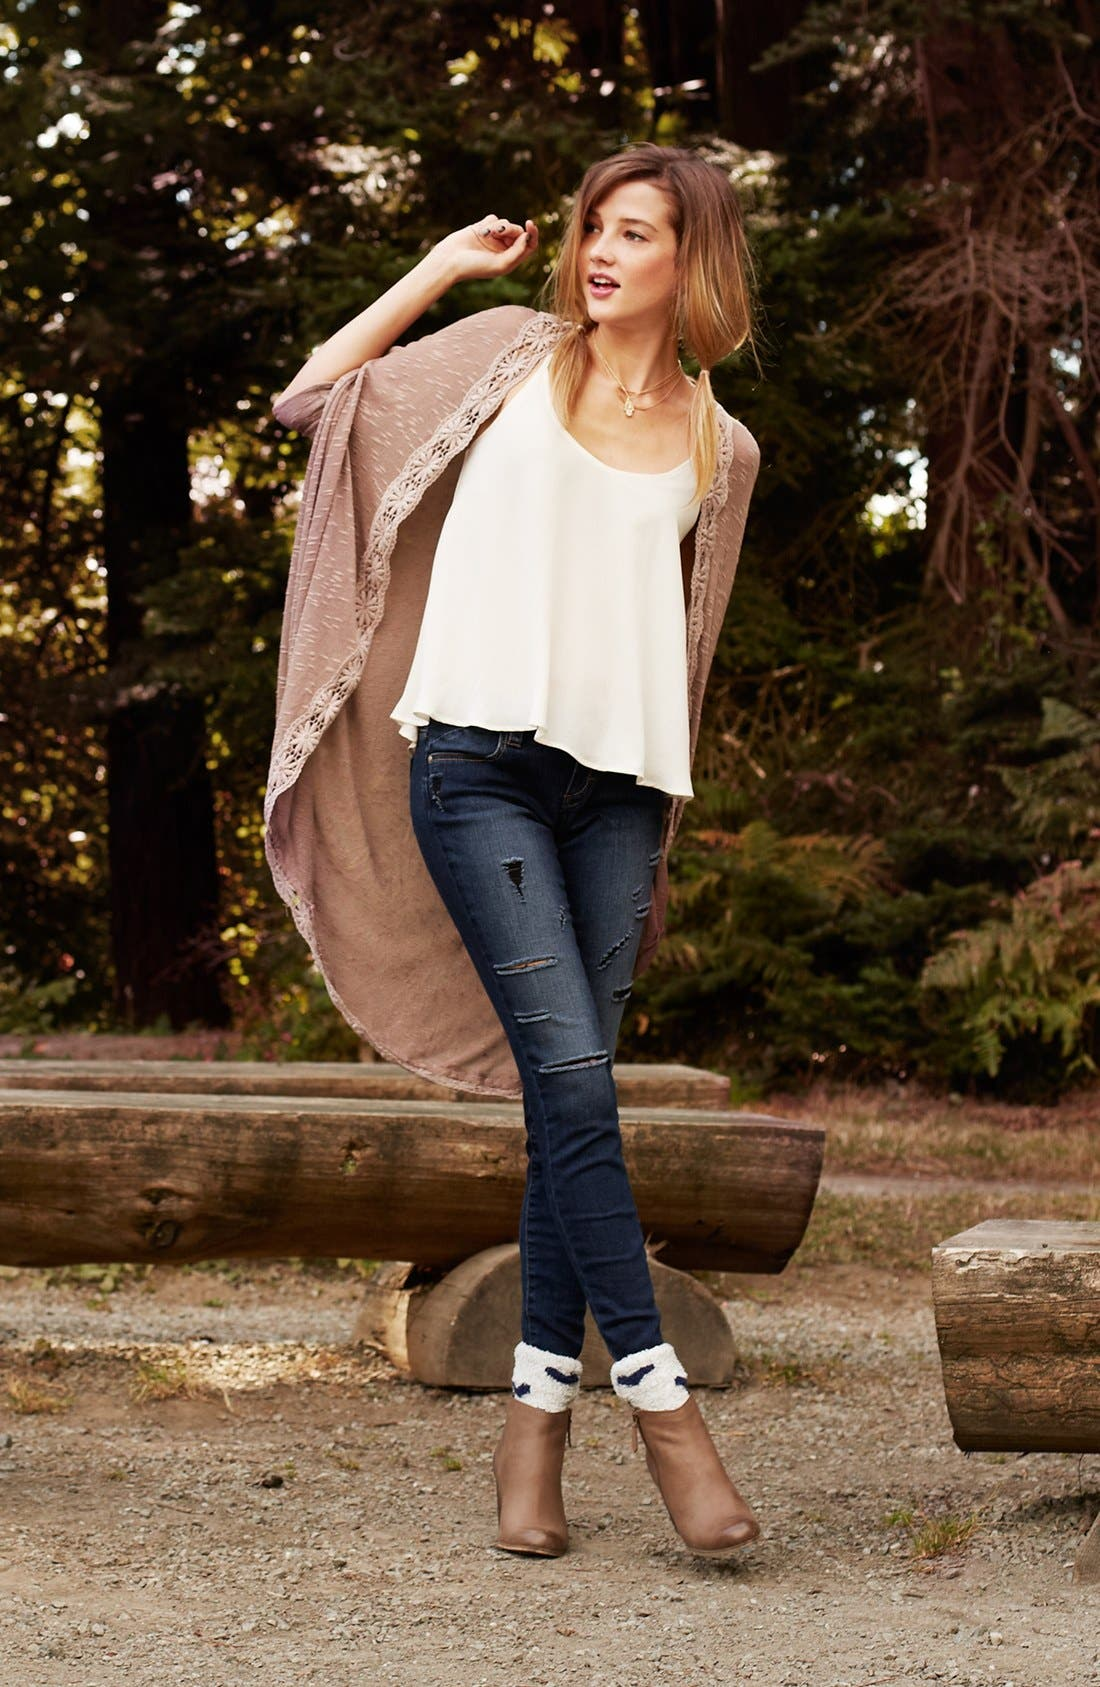 Main Image - Painted Threads Cardigan, Lush Camisole & STS Blue Jeans